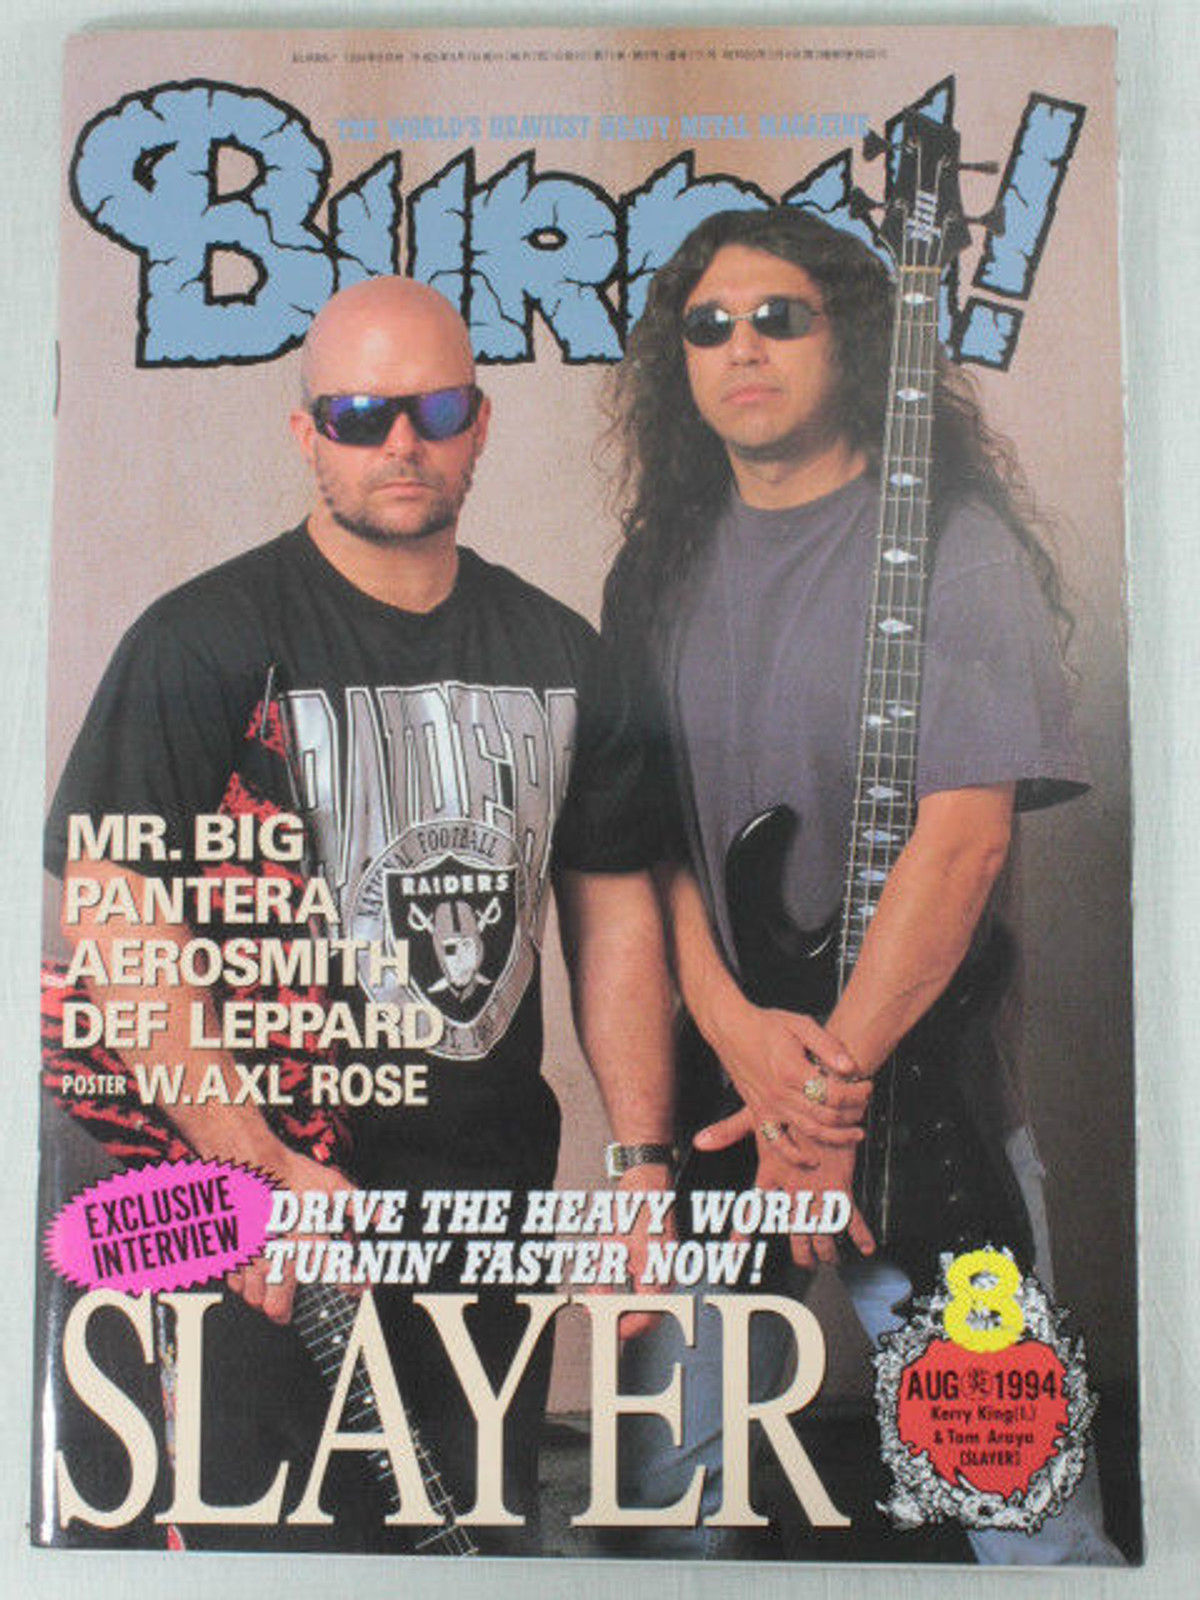 1994/08 BURRN! Japan Rock Magazine SLAYER/MR.BIG/PANTERA/AEROSMITH/HELLOWEEN